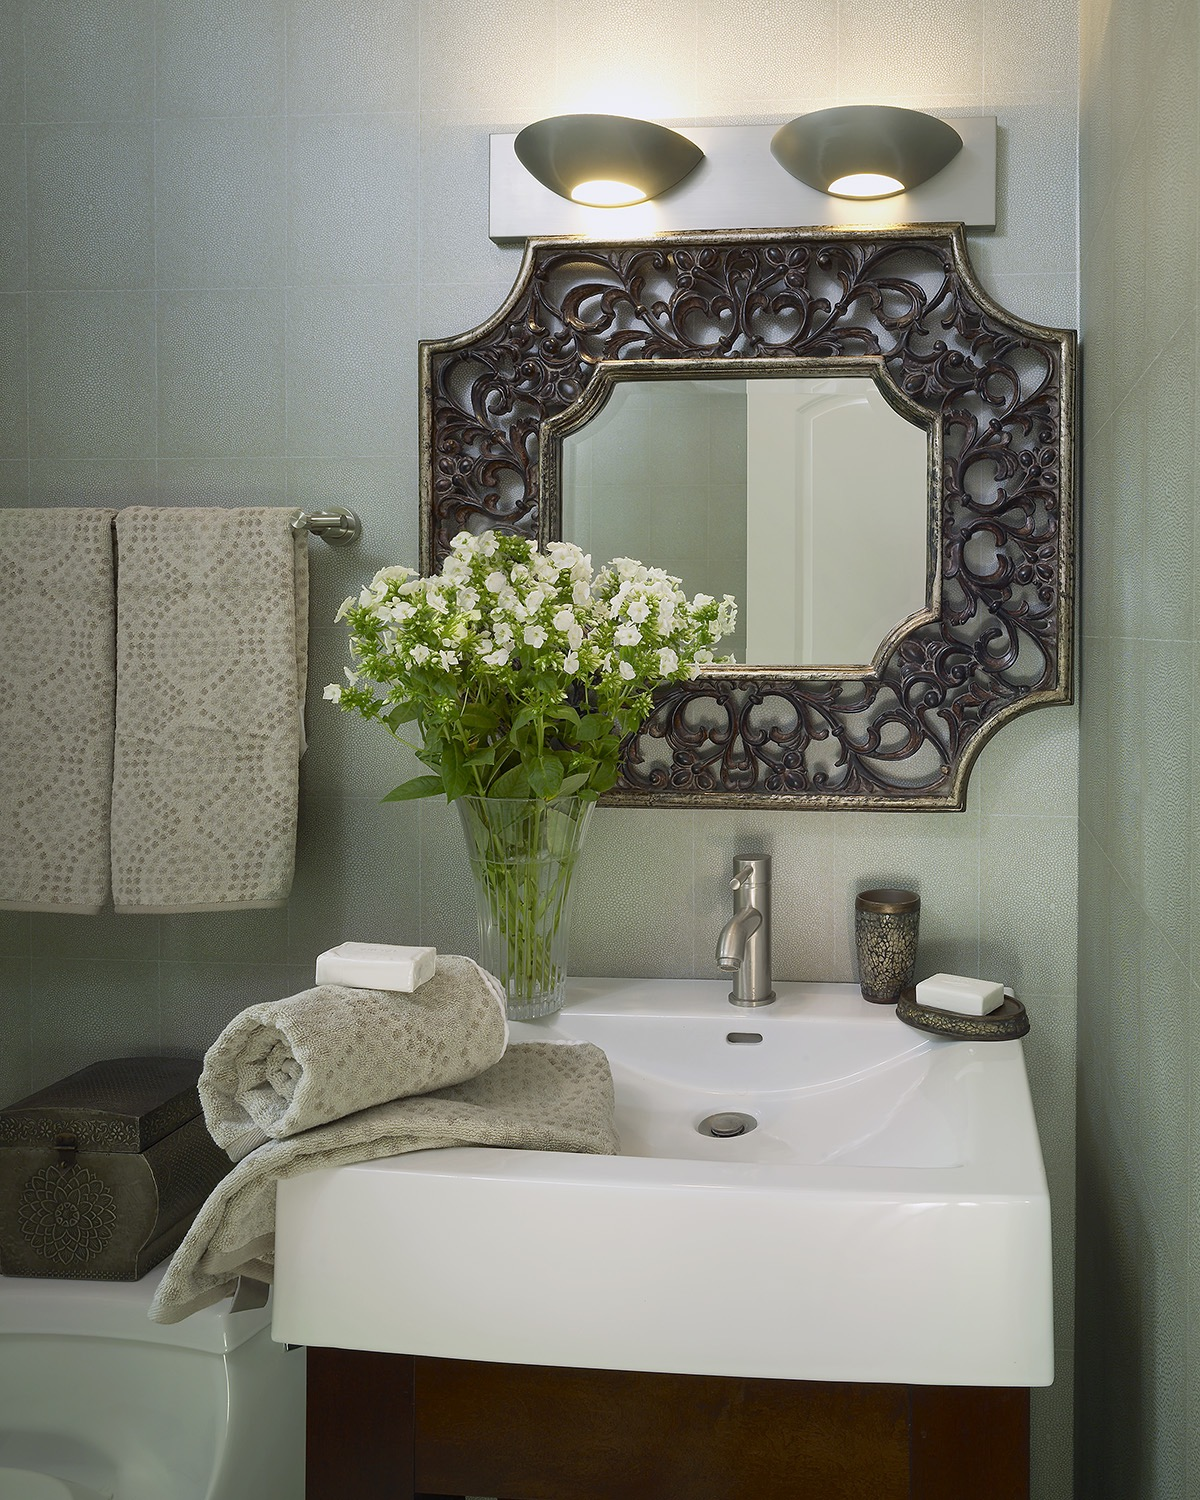 Hollywood Mirror For Tiny Bathroom Interior (Image 1 of 4)